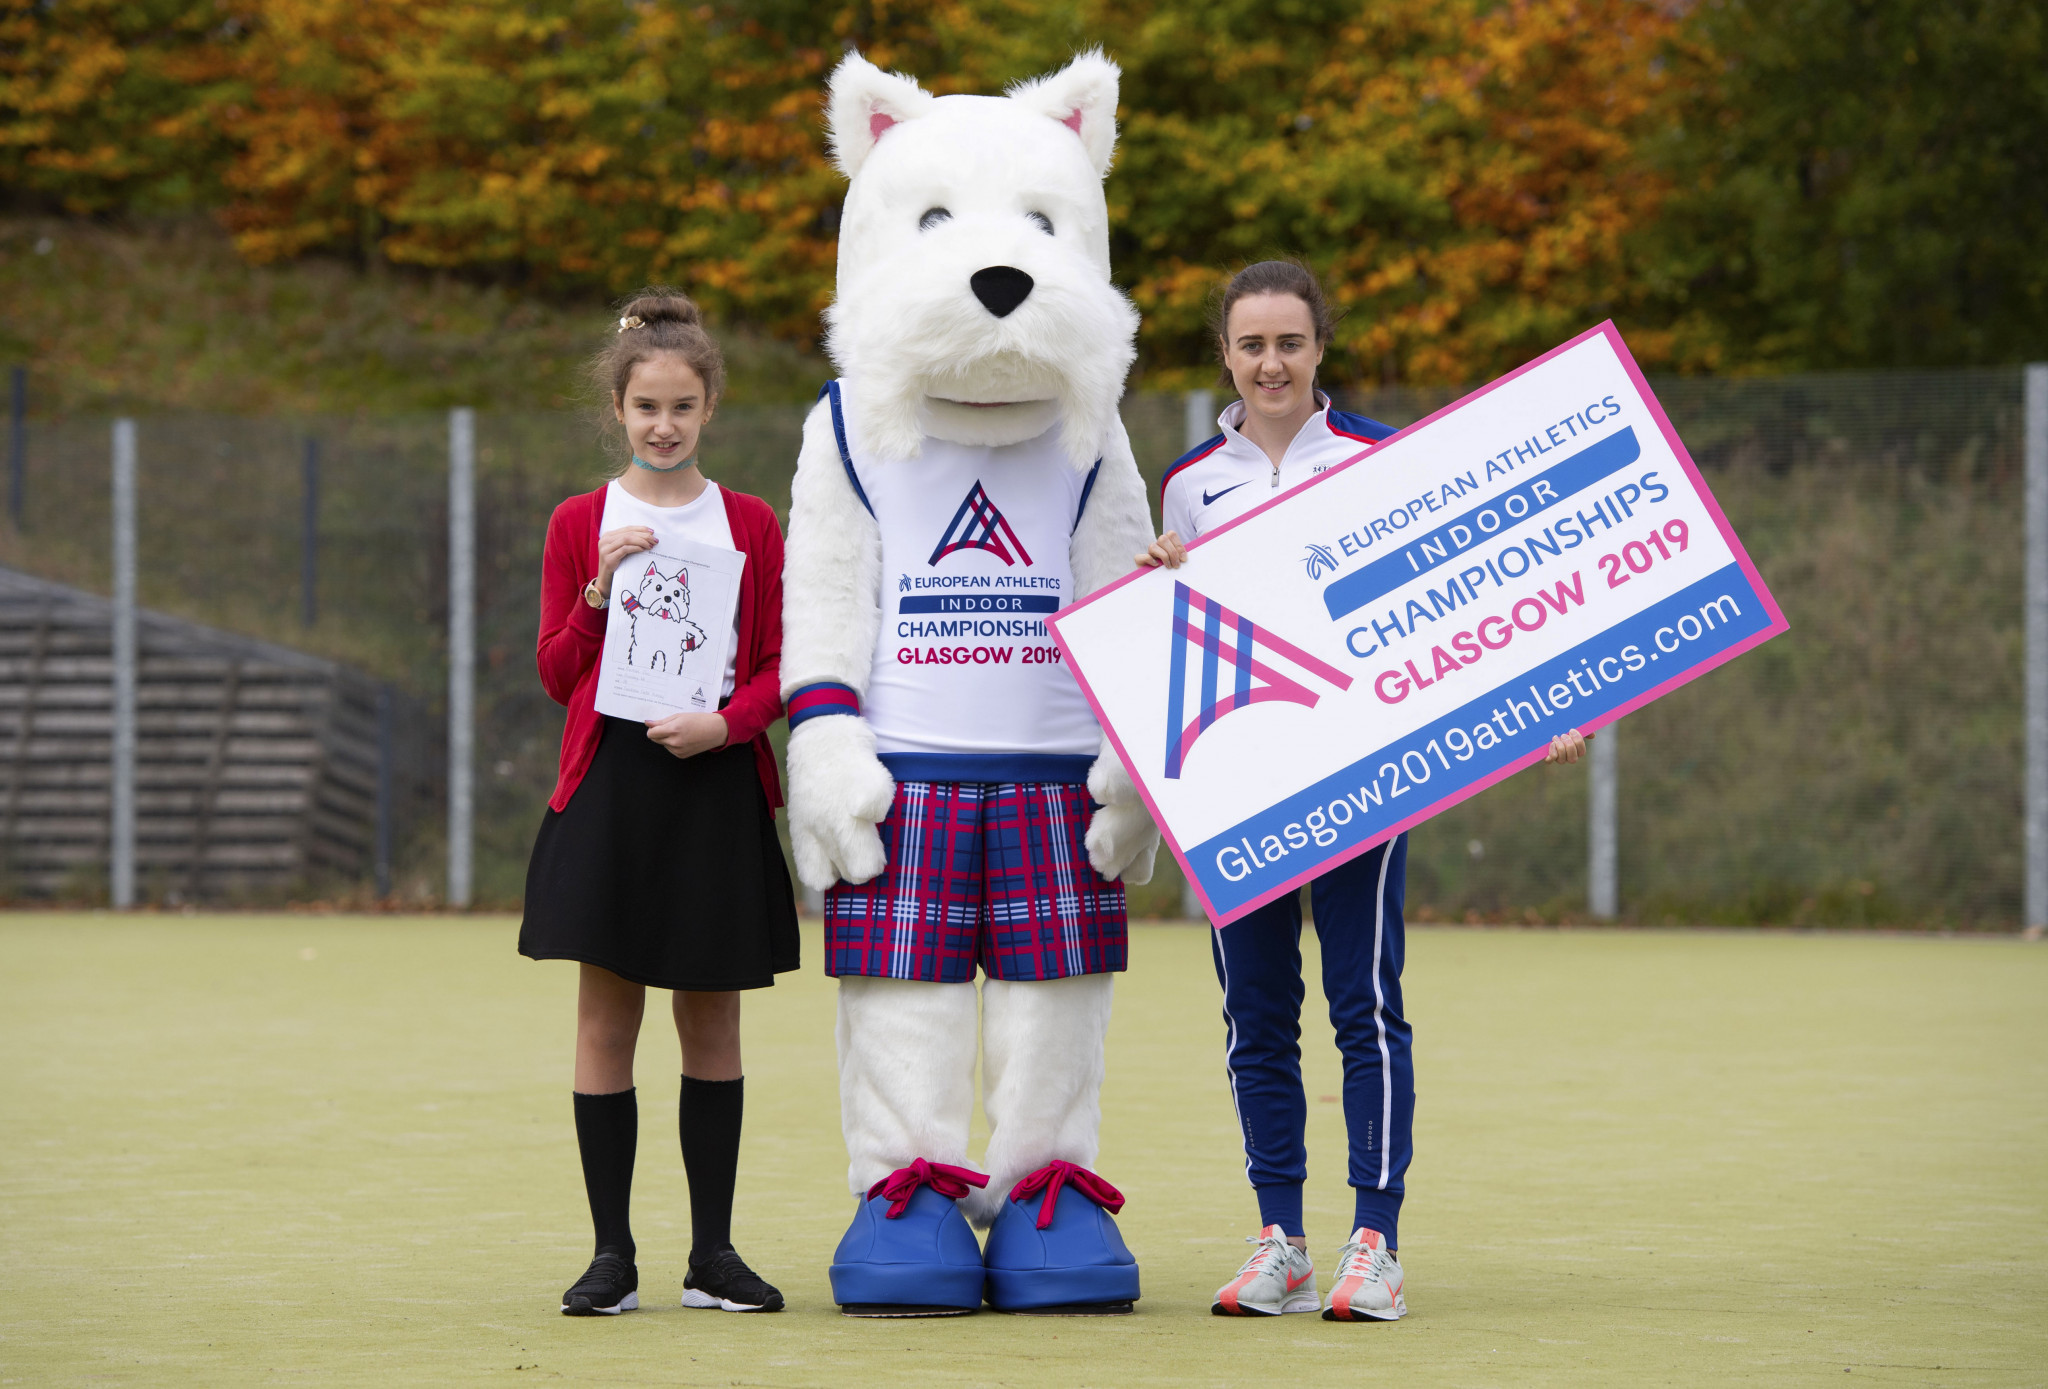 Scottee the Scottie dog, designed by Rachael Joss, has been unveiled as the mascot for the European Athletics Indoor Championships Glasgow 2019 ©European Athletics Indoor Championships Glasgow 2019